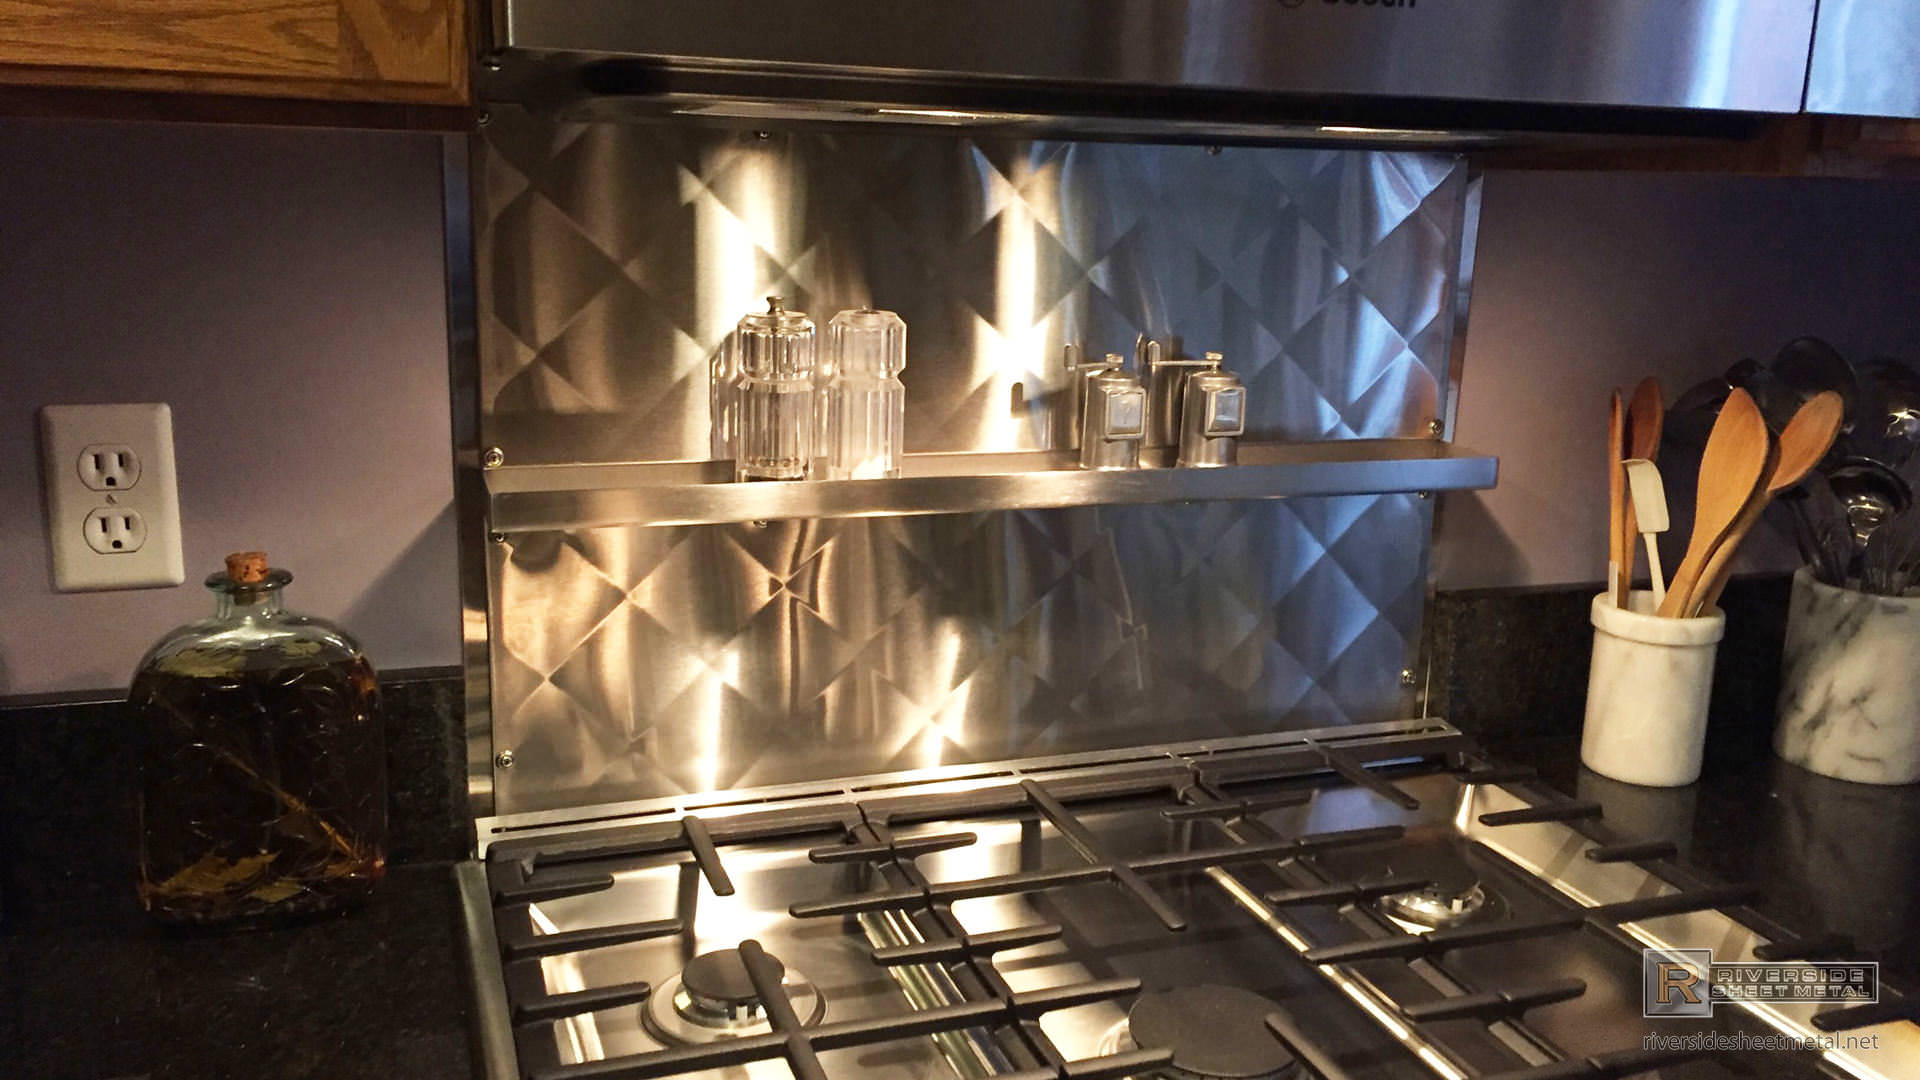 Kitchen Backsplash For Counter Tops Copper Stainless And